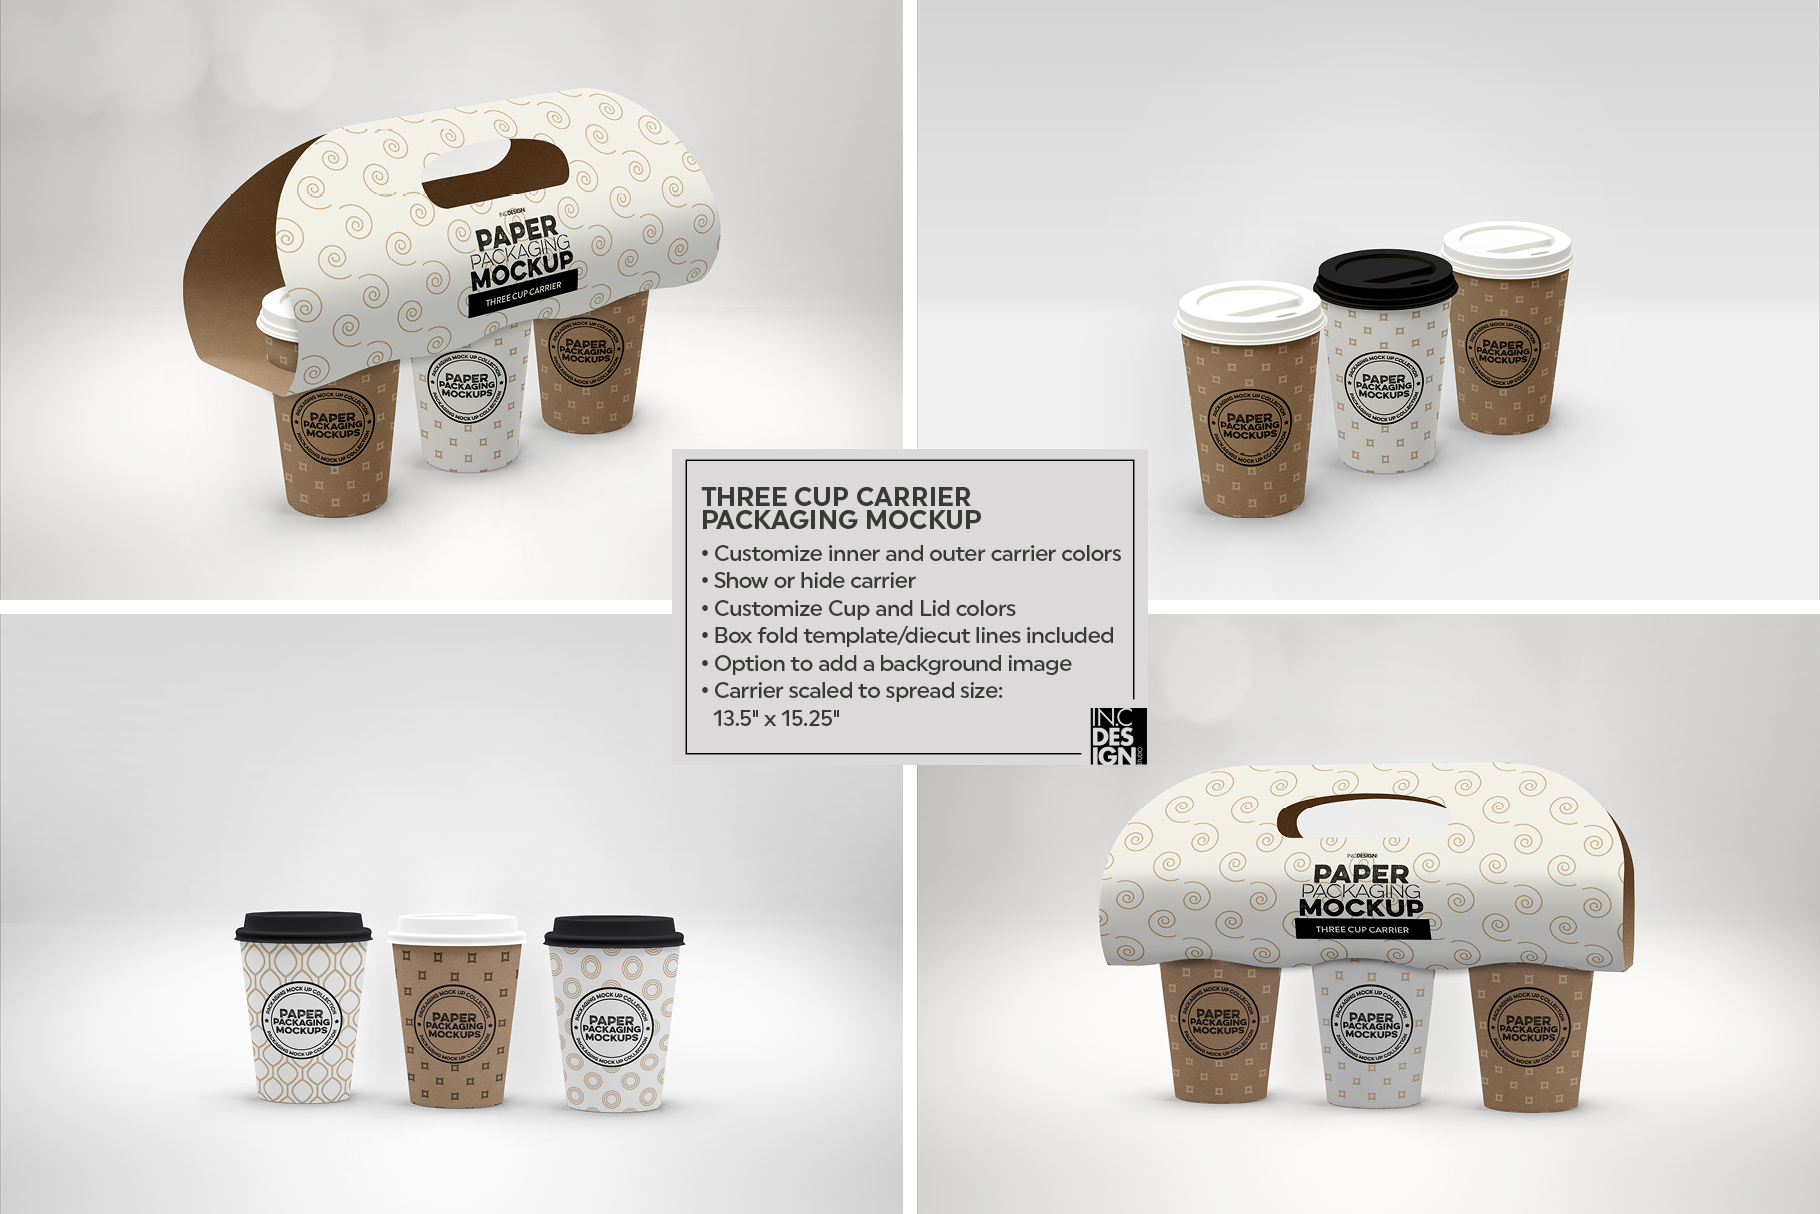 Three Cup Paper Carrier Packaging Mockup example image 3